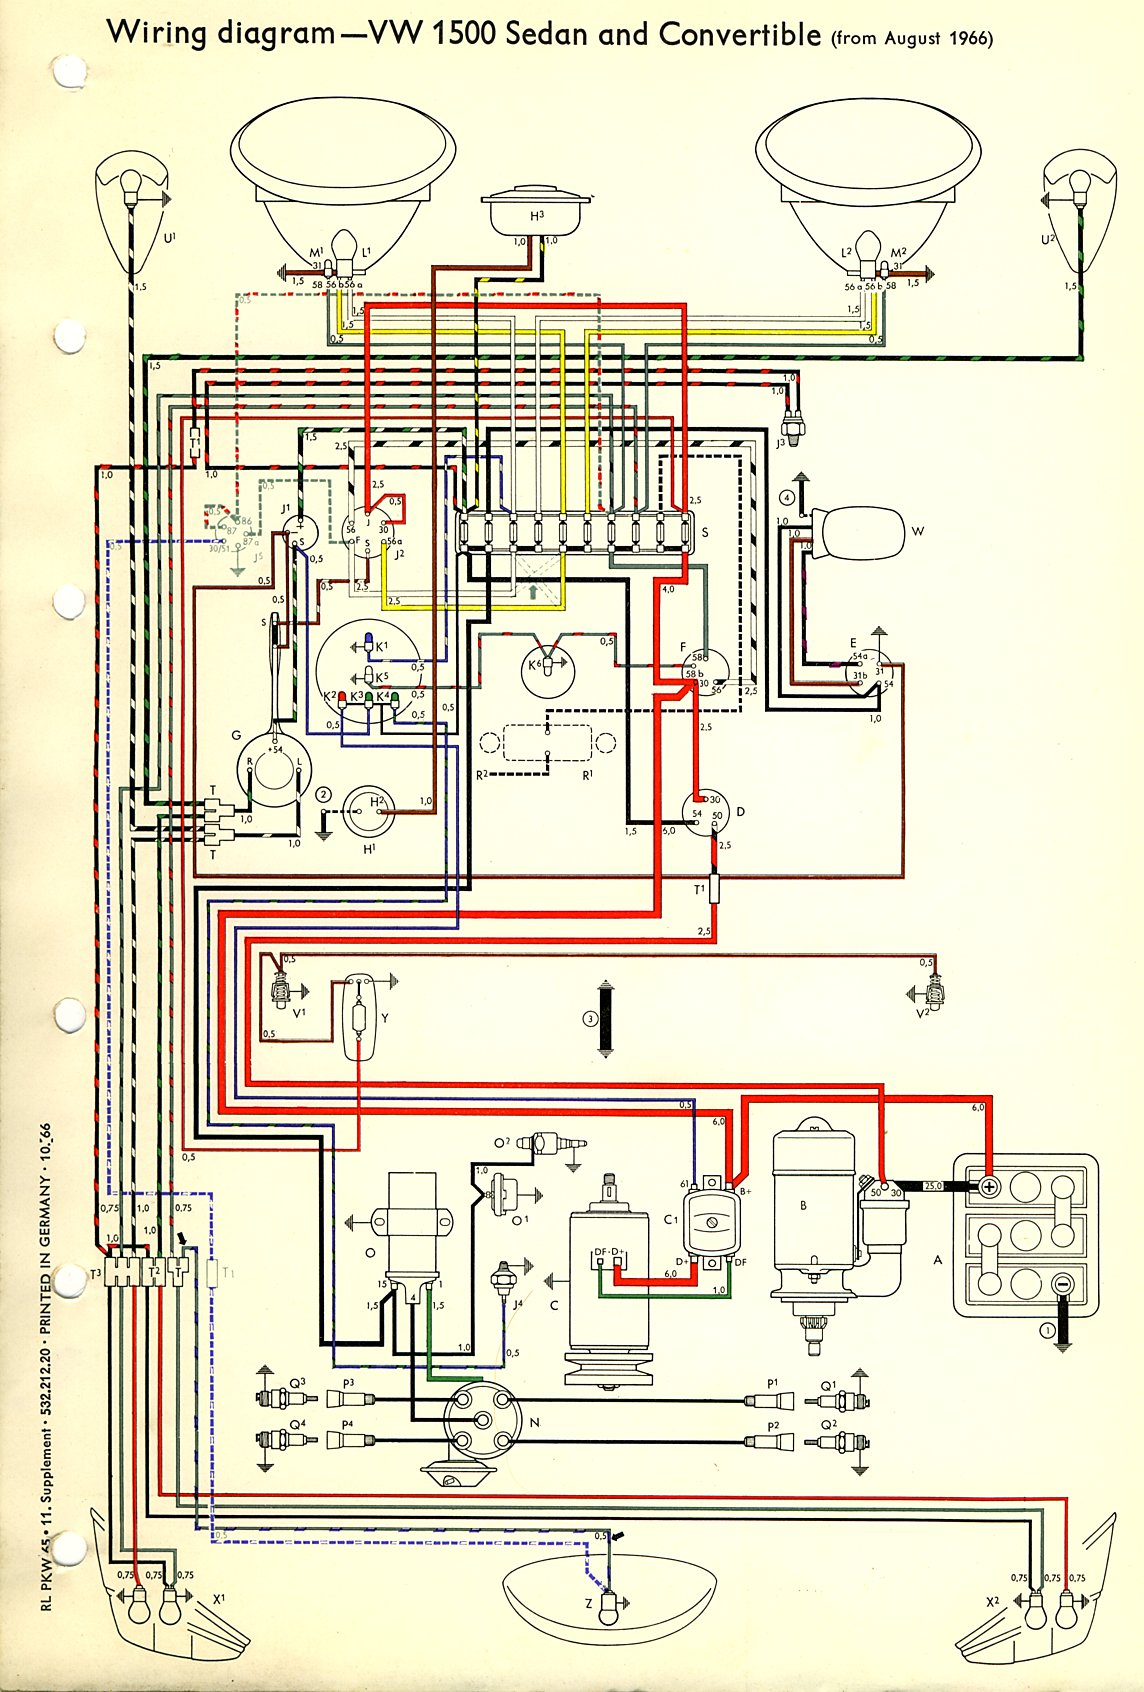 wiring diagram vw bettle wiring data rh unroutine co New Beetle Wiring Diagram 76 VW Bus Wiring Diagram